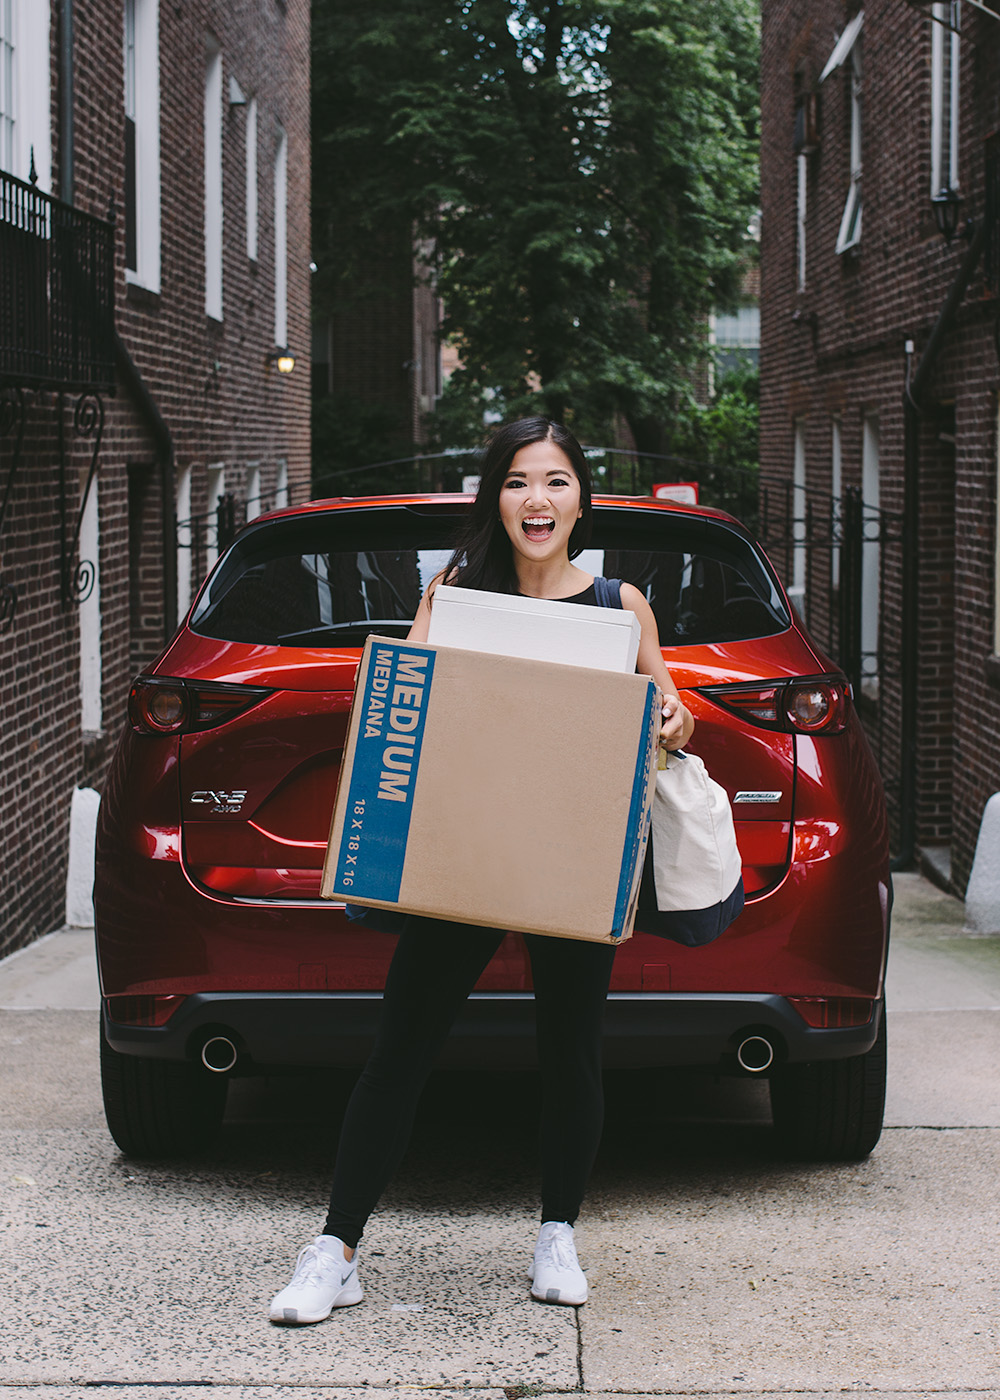 How to Save Money on Movers